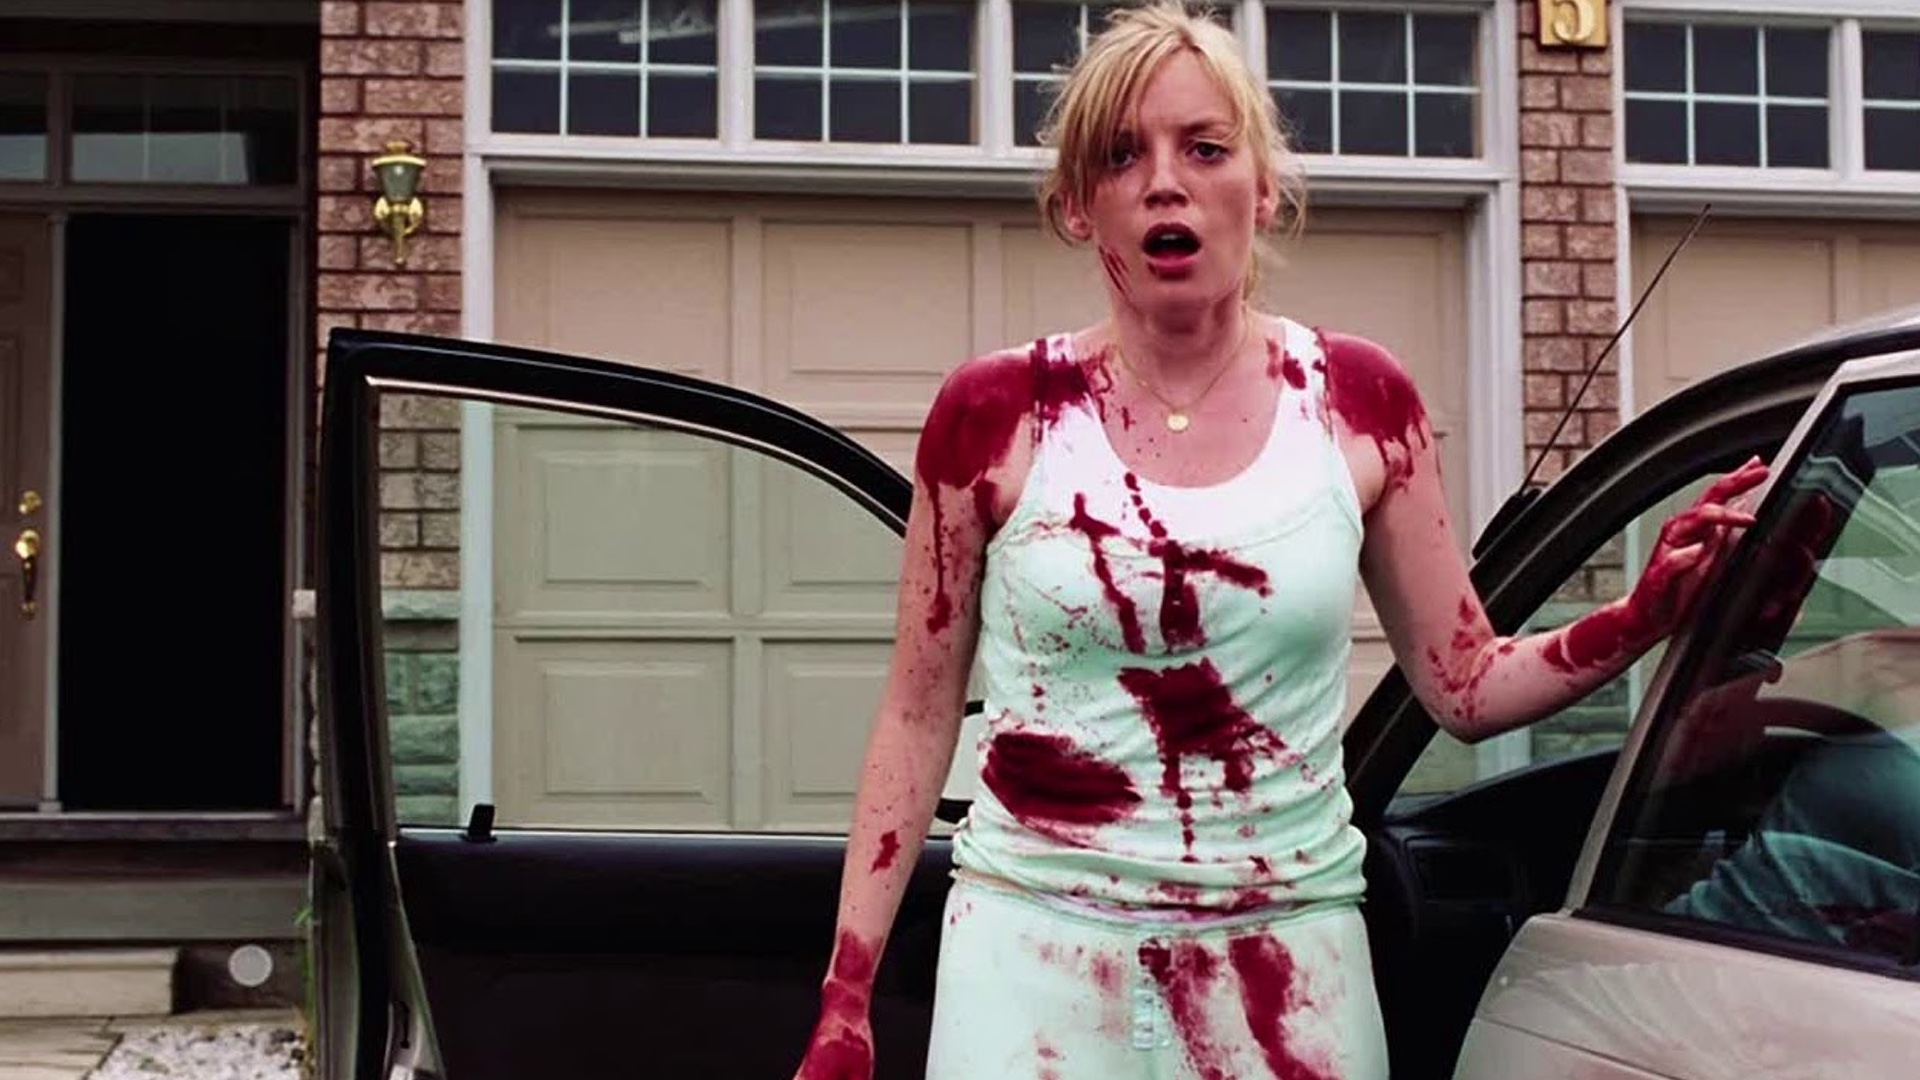 the-original-script-for-zack-snyders-army-of-the-dead-included-zombies-raping-woman-social.jpg